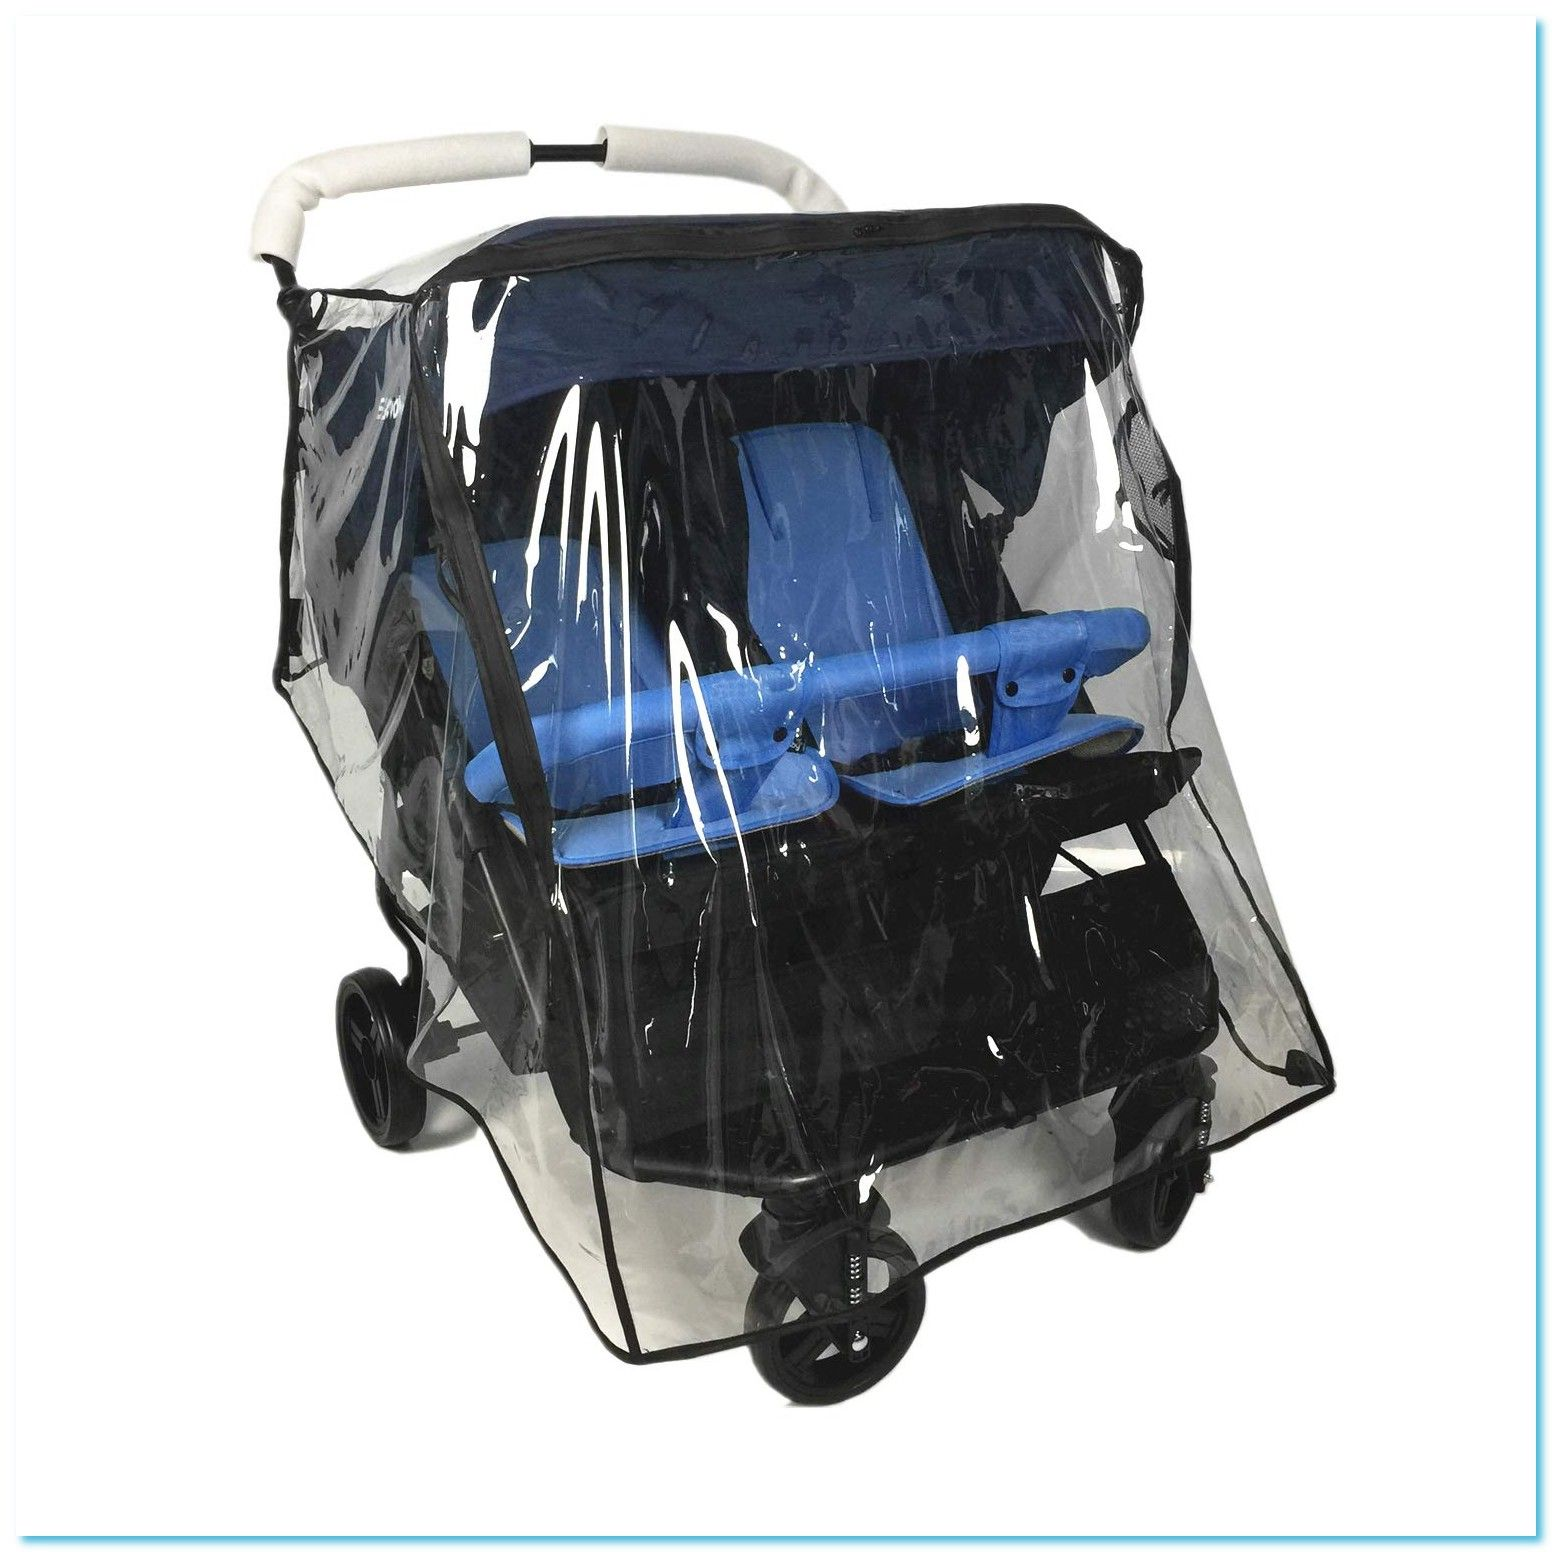 84 reference of baby trend double stroller side by side in